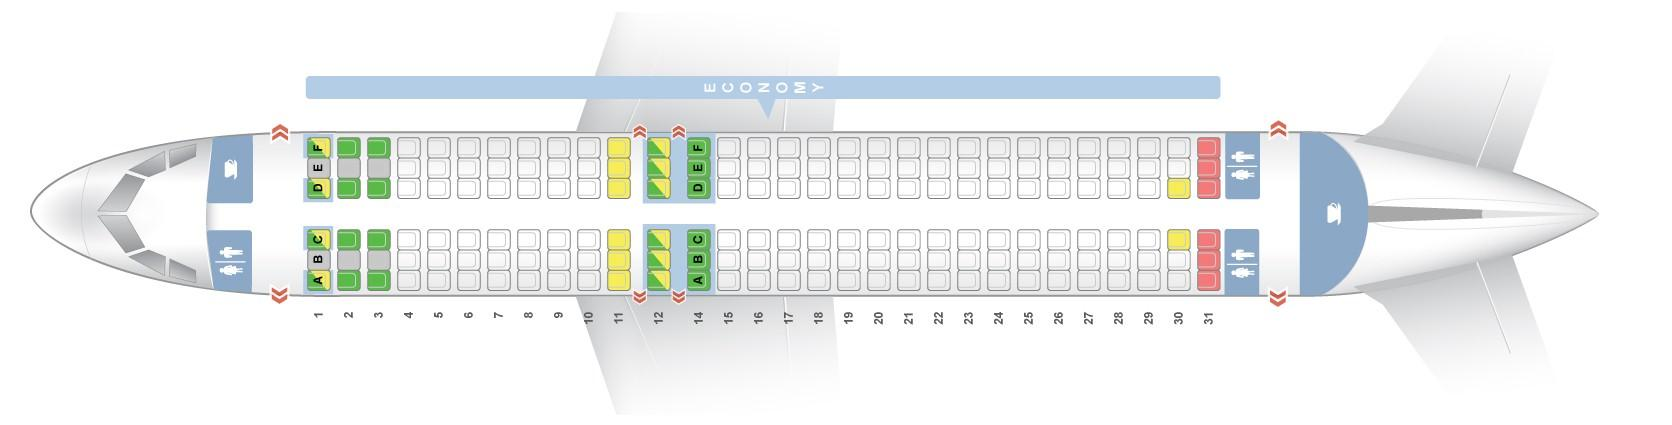 Seat Map Airbus A320 200 Quot Vueling Quot Best Seats In The Plane